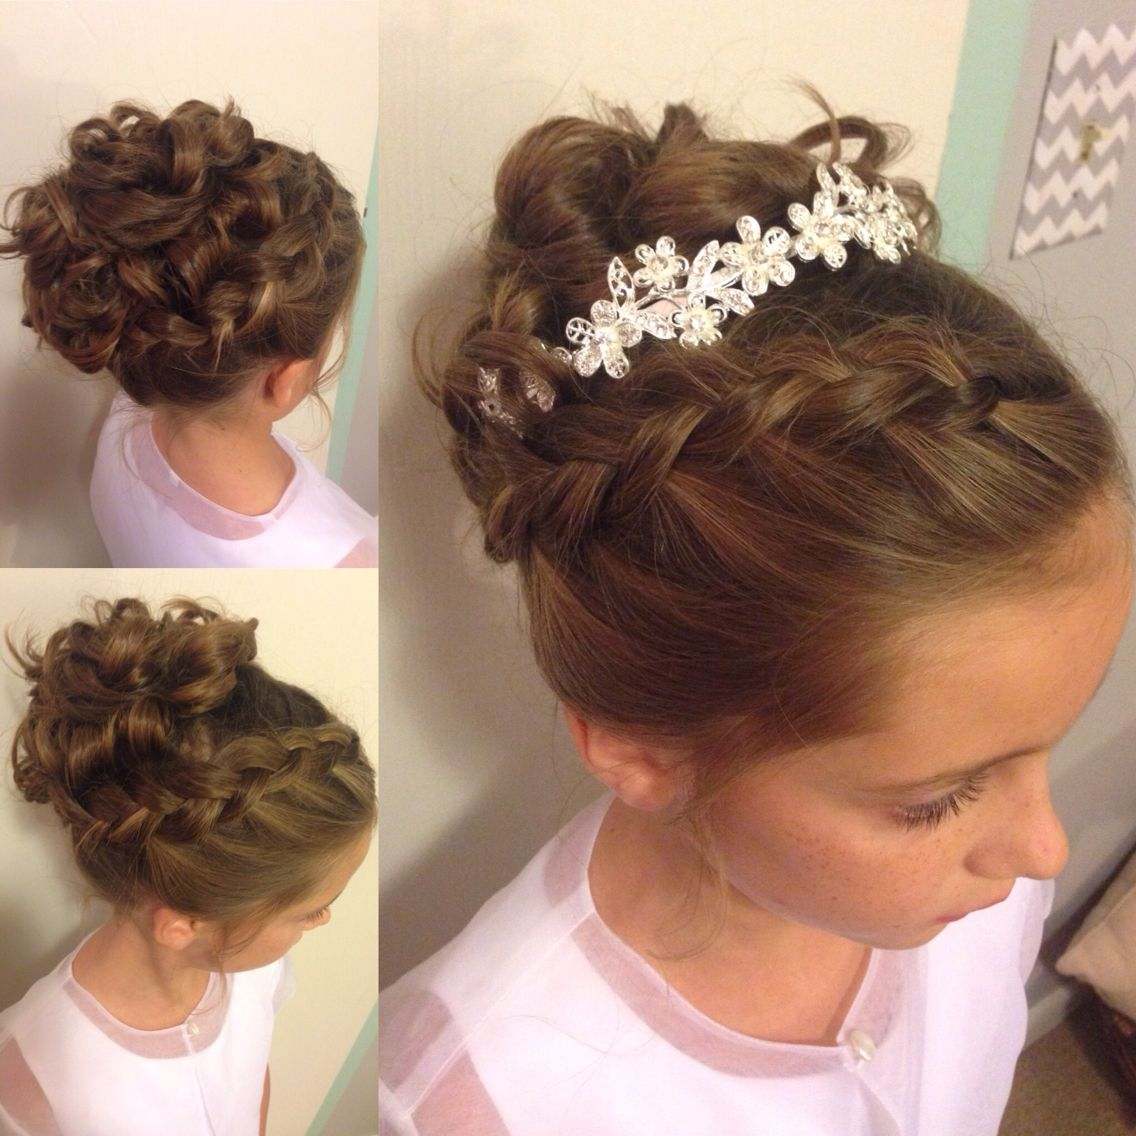 Little girl updo wedding hairstyle instagram camfamsisters